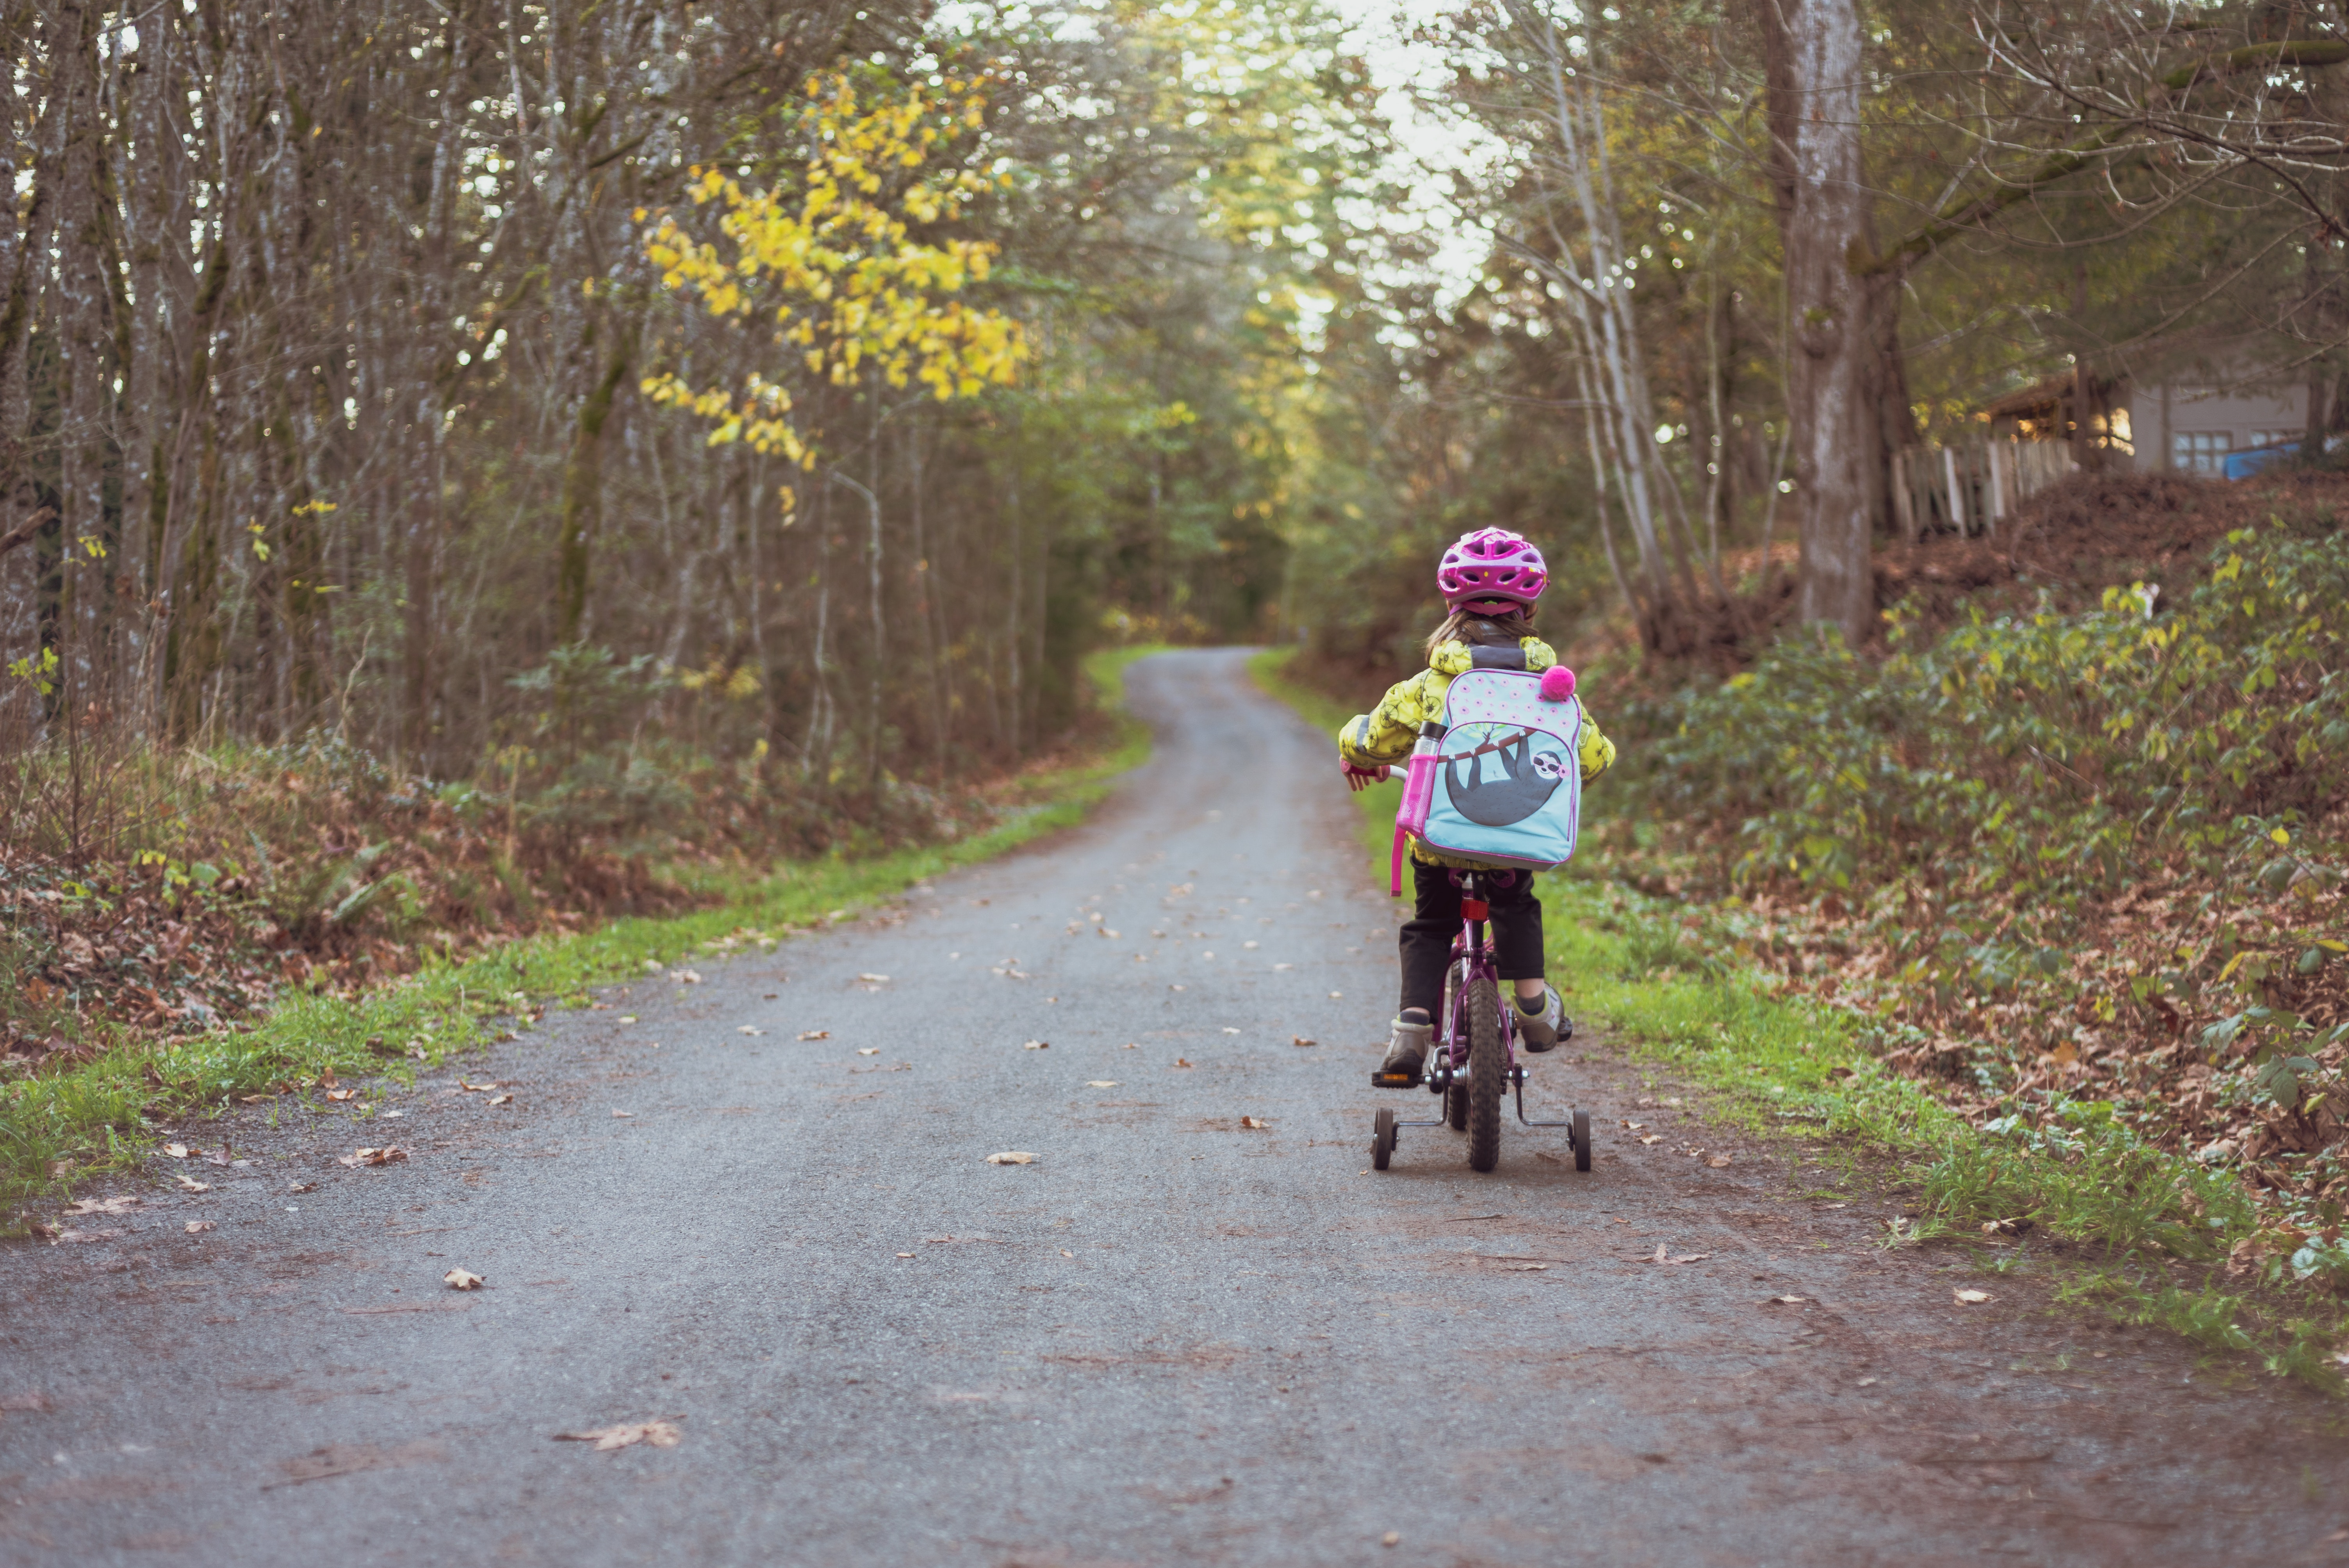 Best Bike for 7 Year Old Boy with Training Wheels